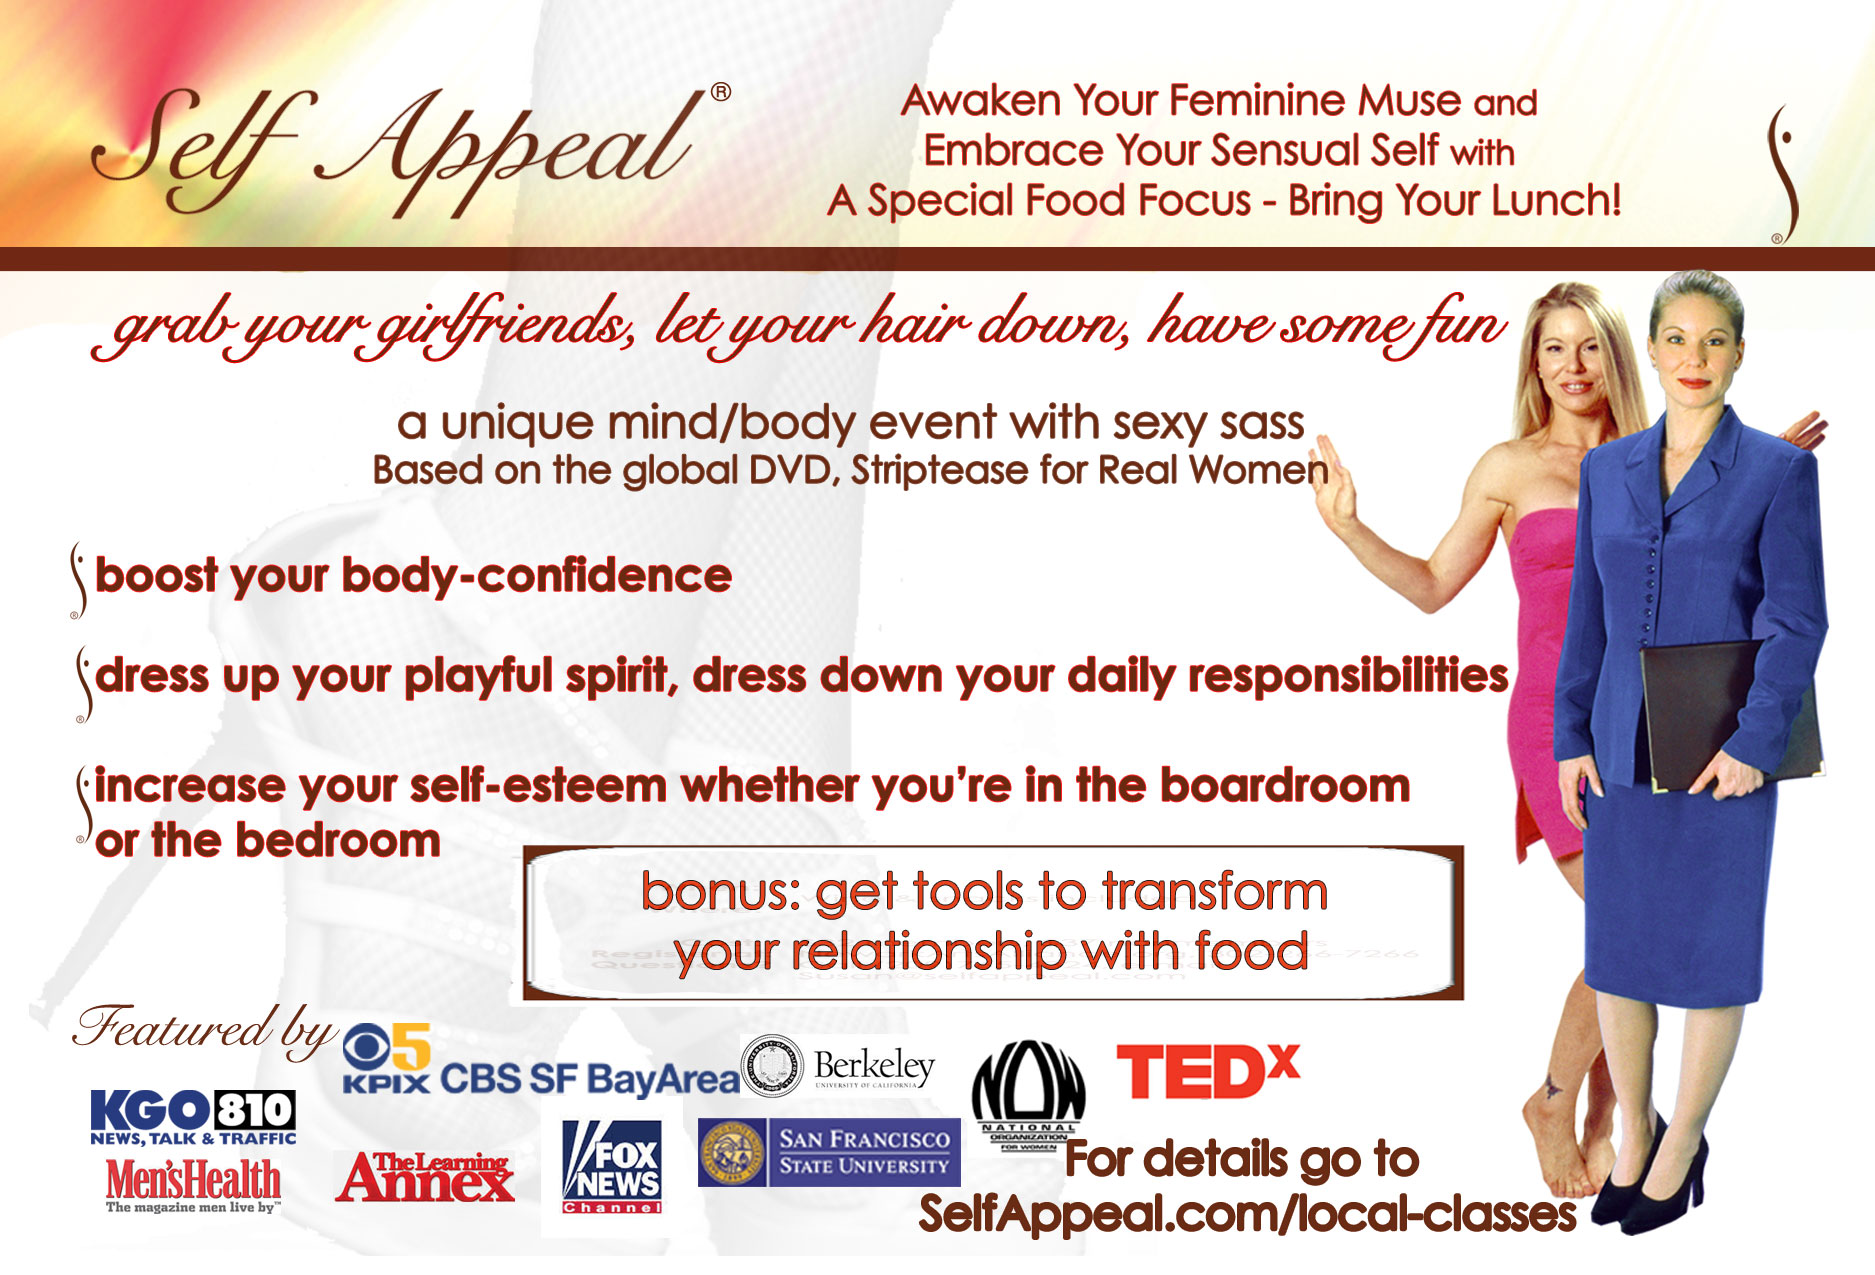 Self Appeal Awaken Your Feminine Muse with Food Event